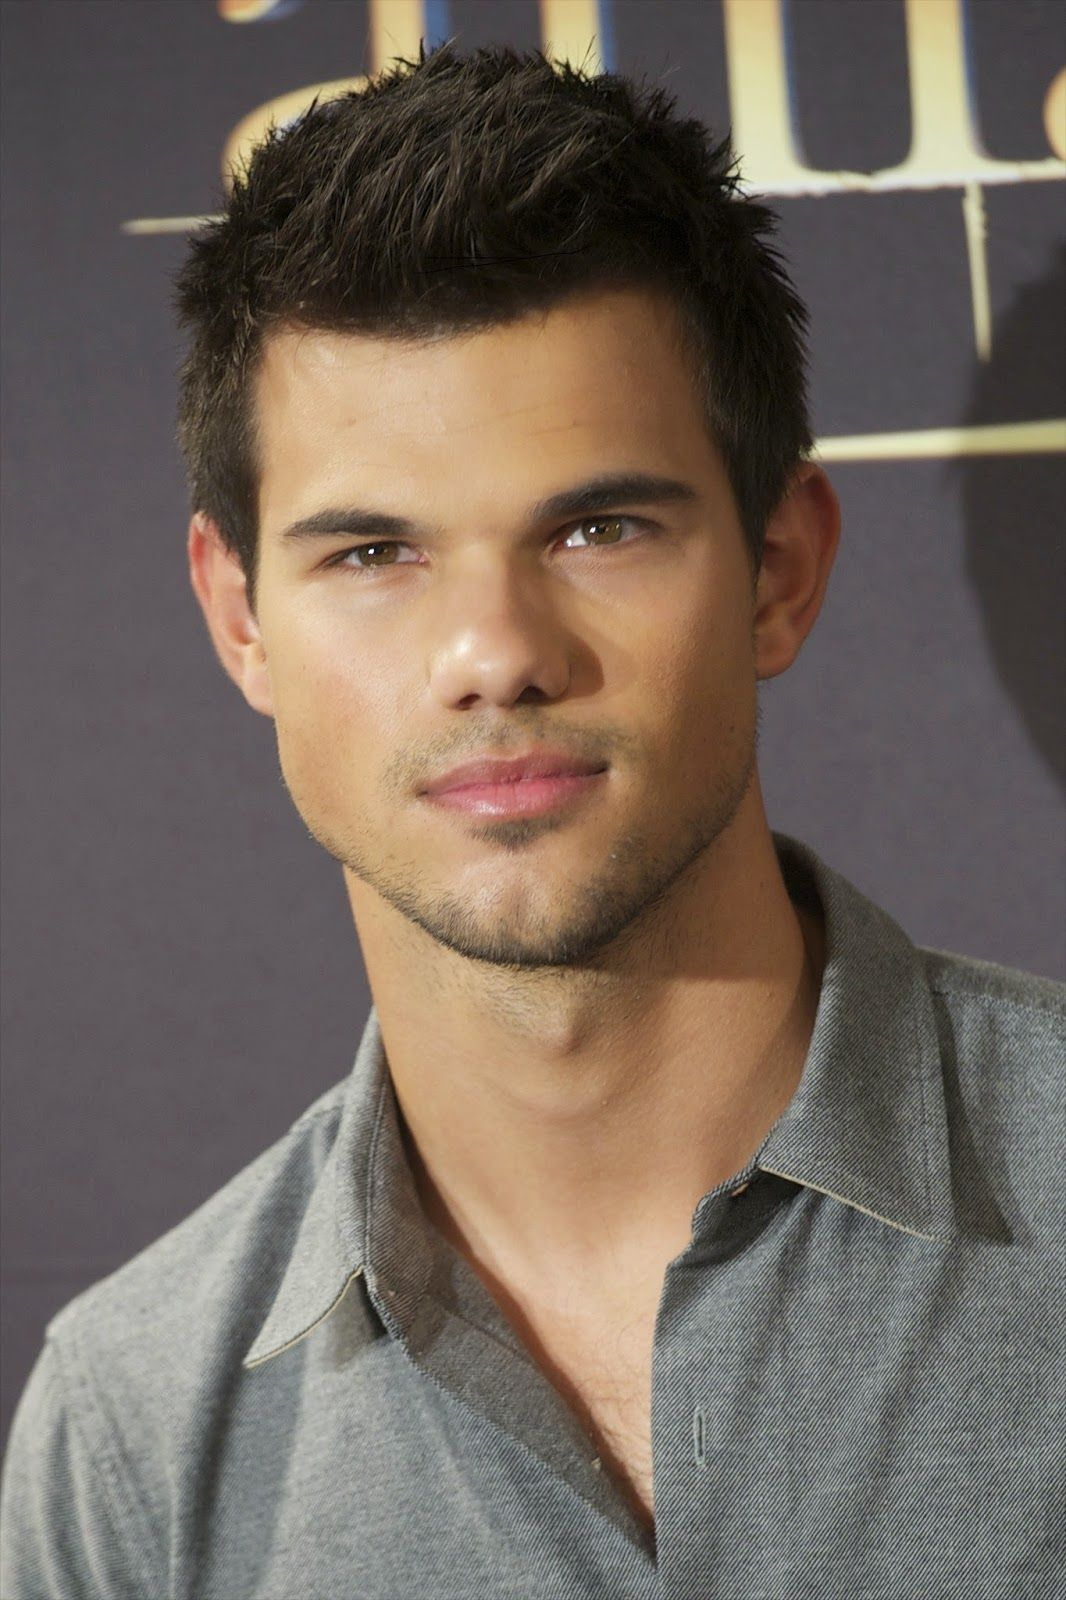 Taylor Lautner is an American actor, voice actor, model ... Taylor Lautner